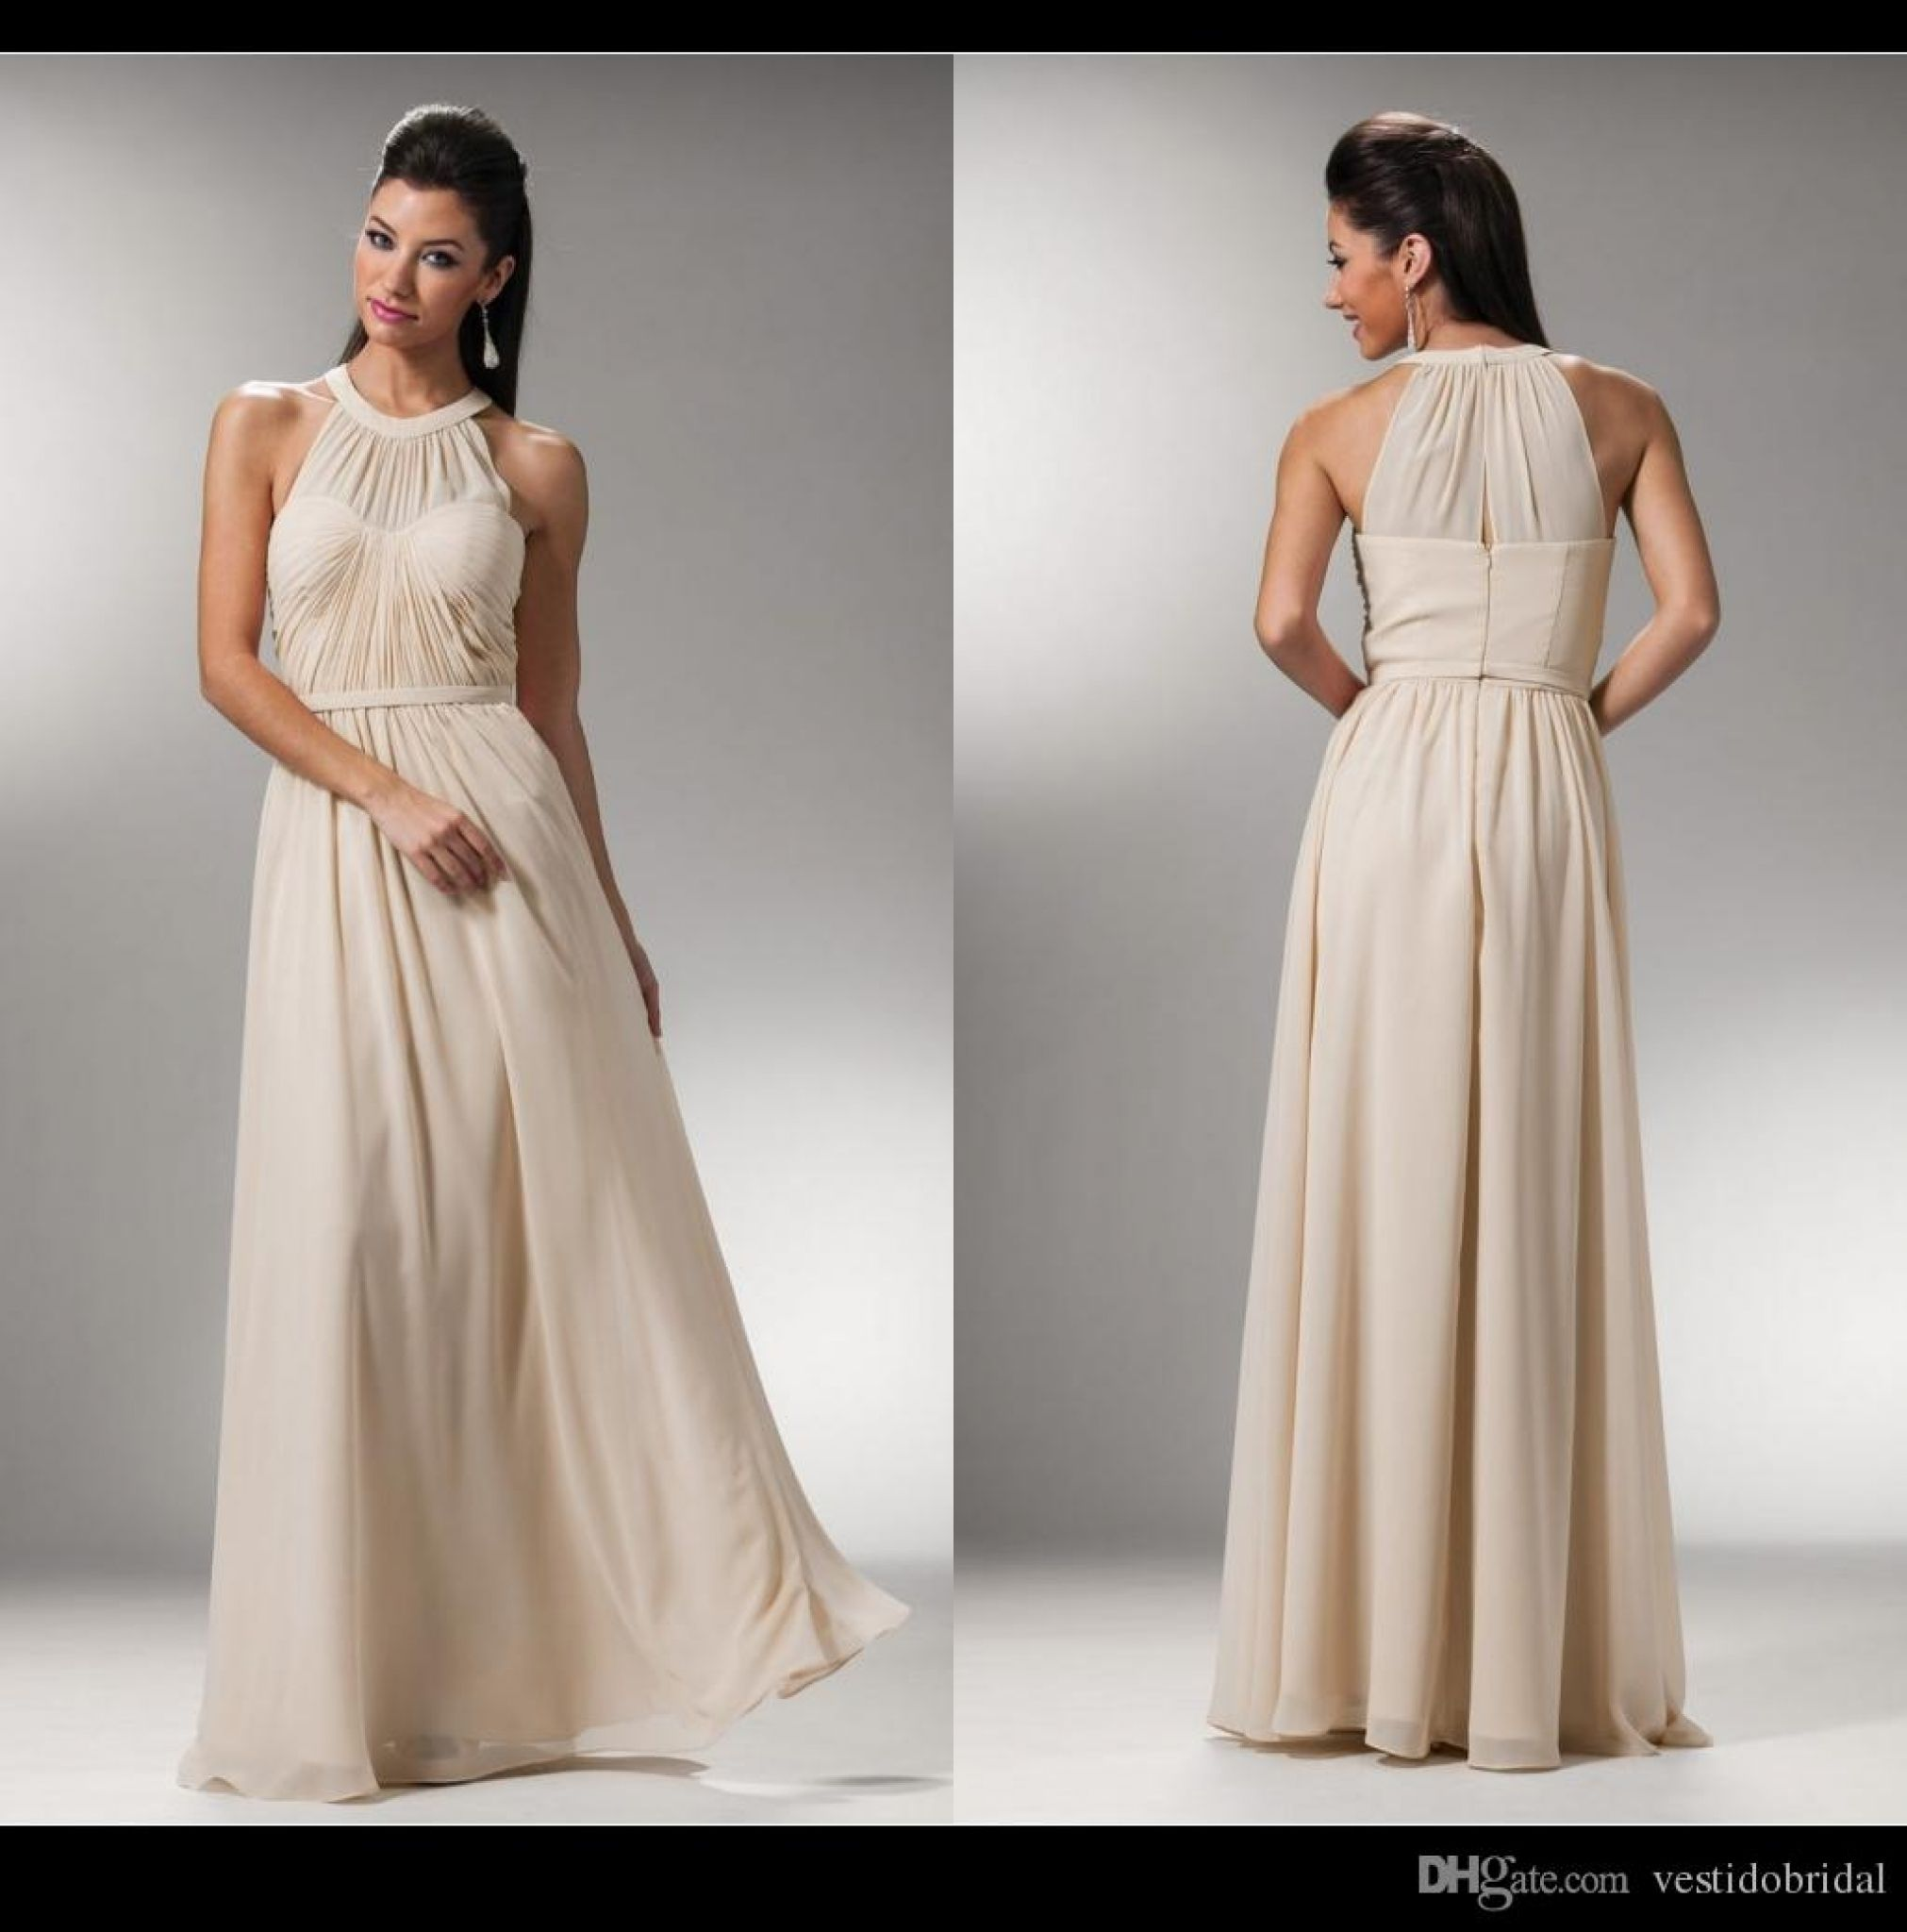 Simple halter wedding dresses dresses for guest at wedding check